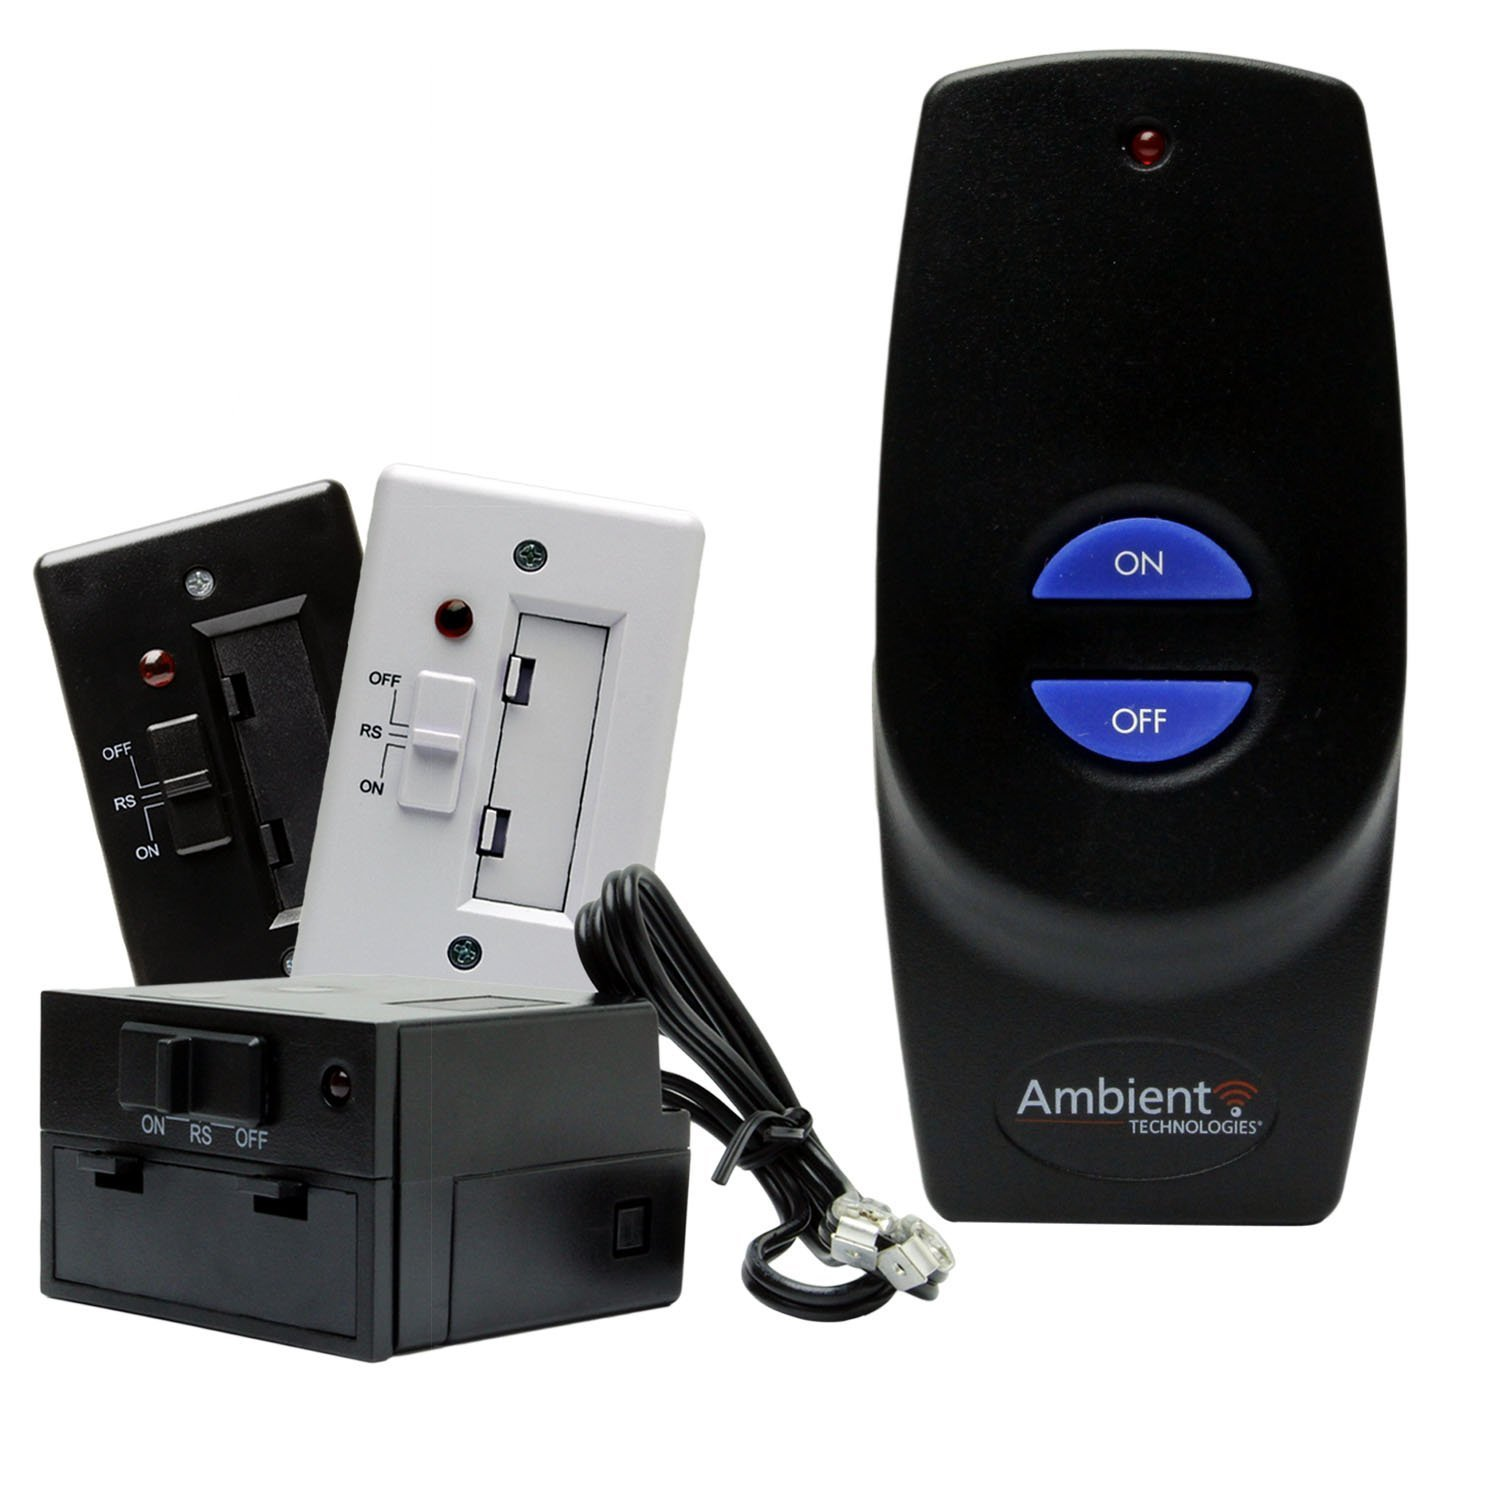 Fireplace Remote Control On/Off Battery Receiver | Majestic, Monessen, Vermont Castings by MN Warehouse Deals by MN Warehouse Deals